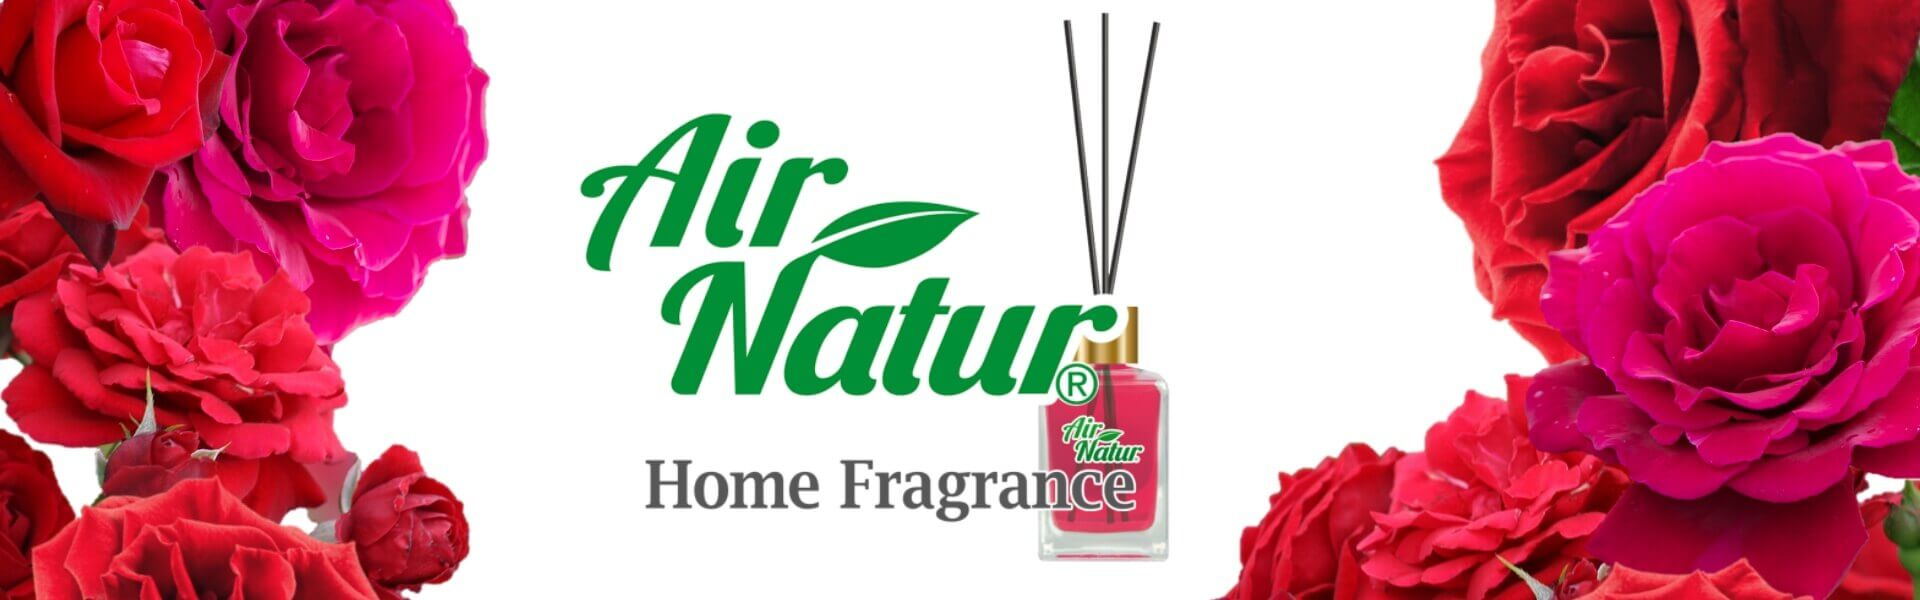 Air Natur Home